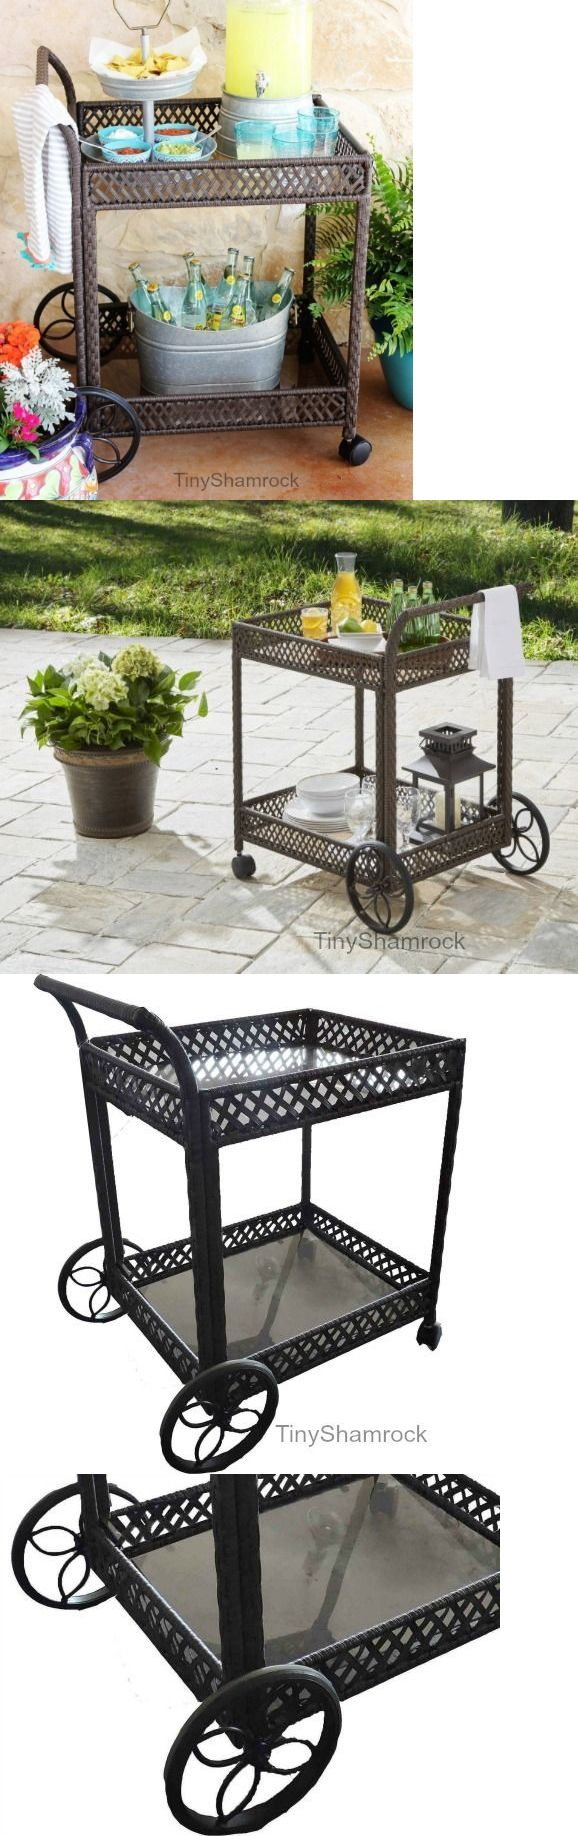 Outdoor buffet table serving cart as well century modern console table - Bar Carts And Serving Carts 183320 Wicker Serving Cart Rolling Drinks Server Patio Kitchen Bar